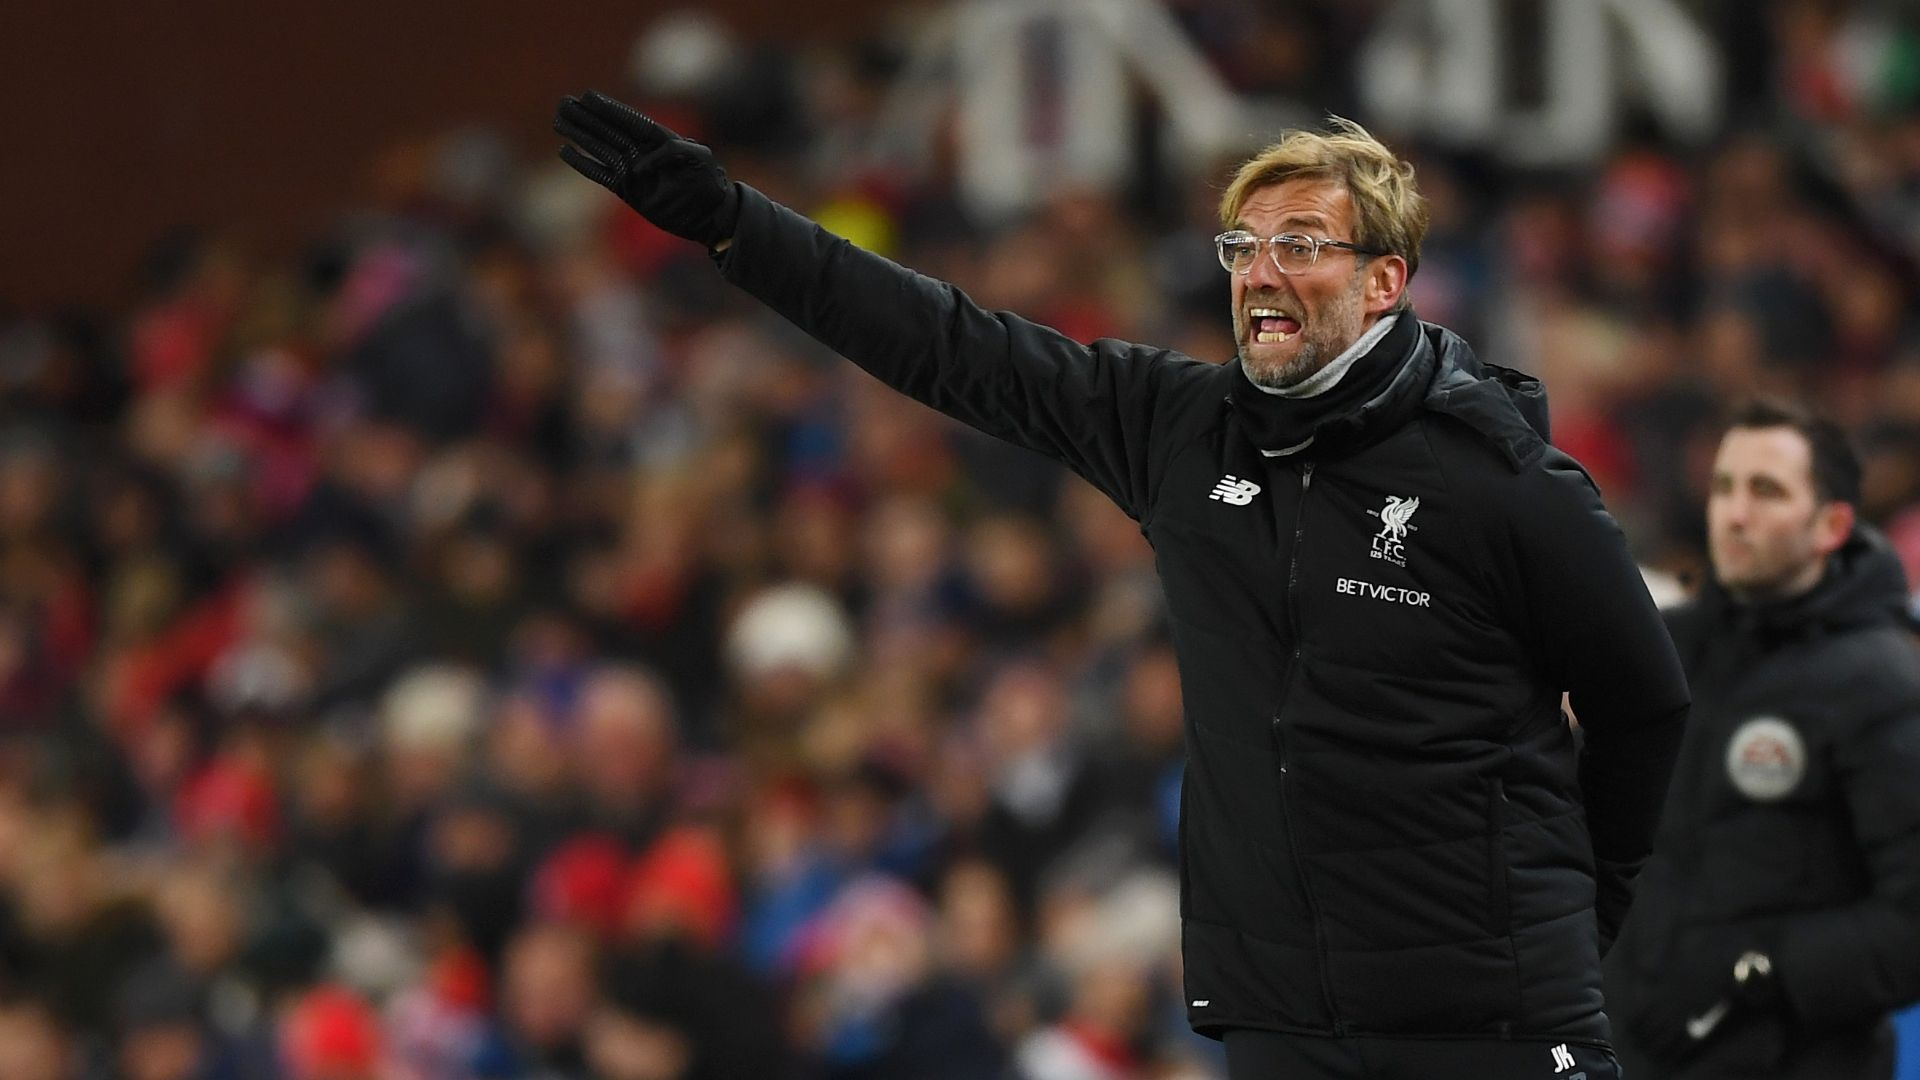 Can 'focused' on Liverpool amid exit talk